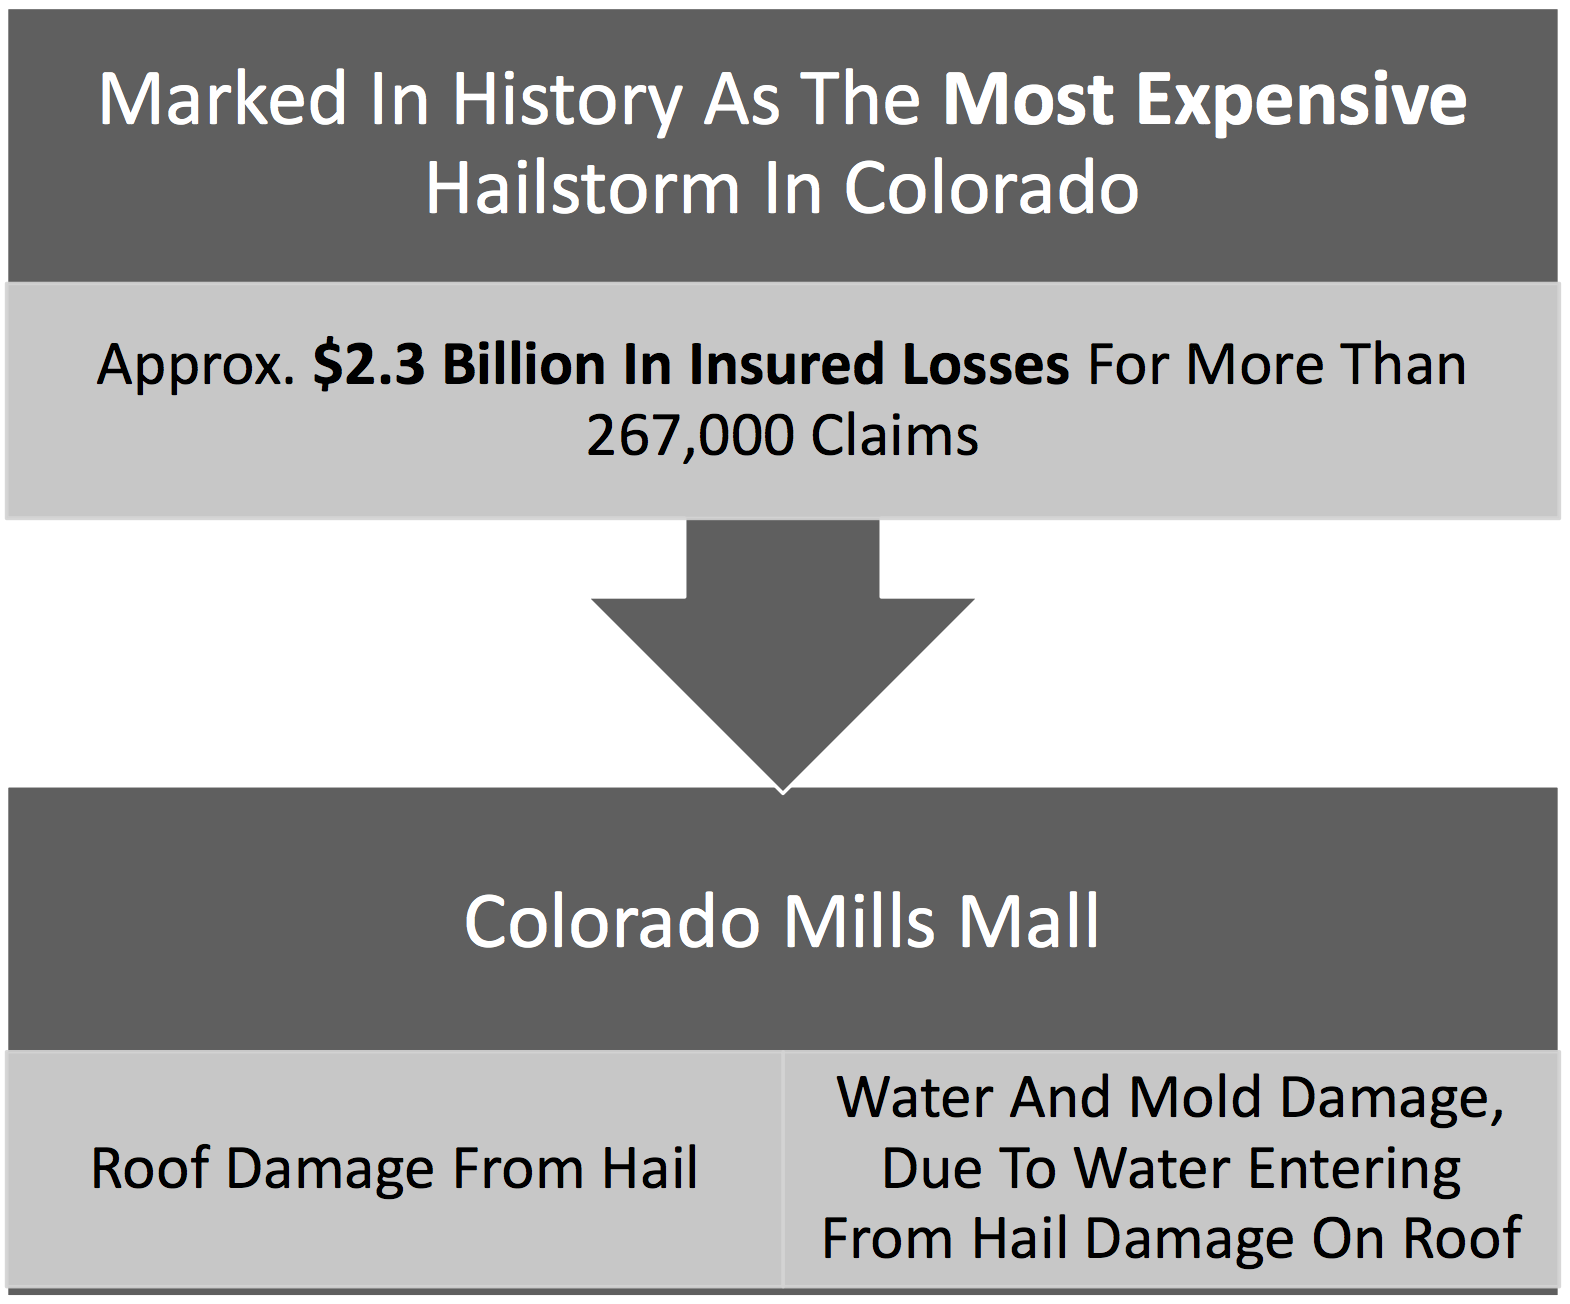 Colorado-Mills-Mall-1.png